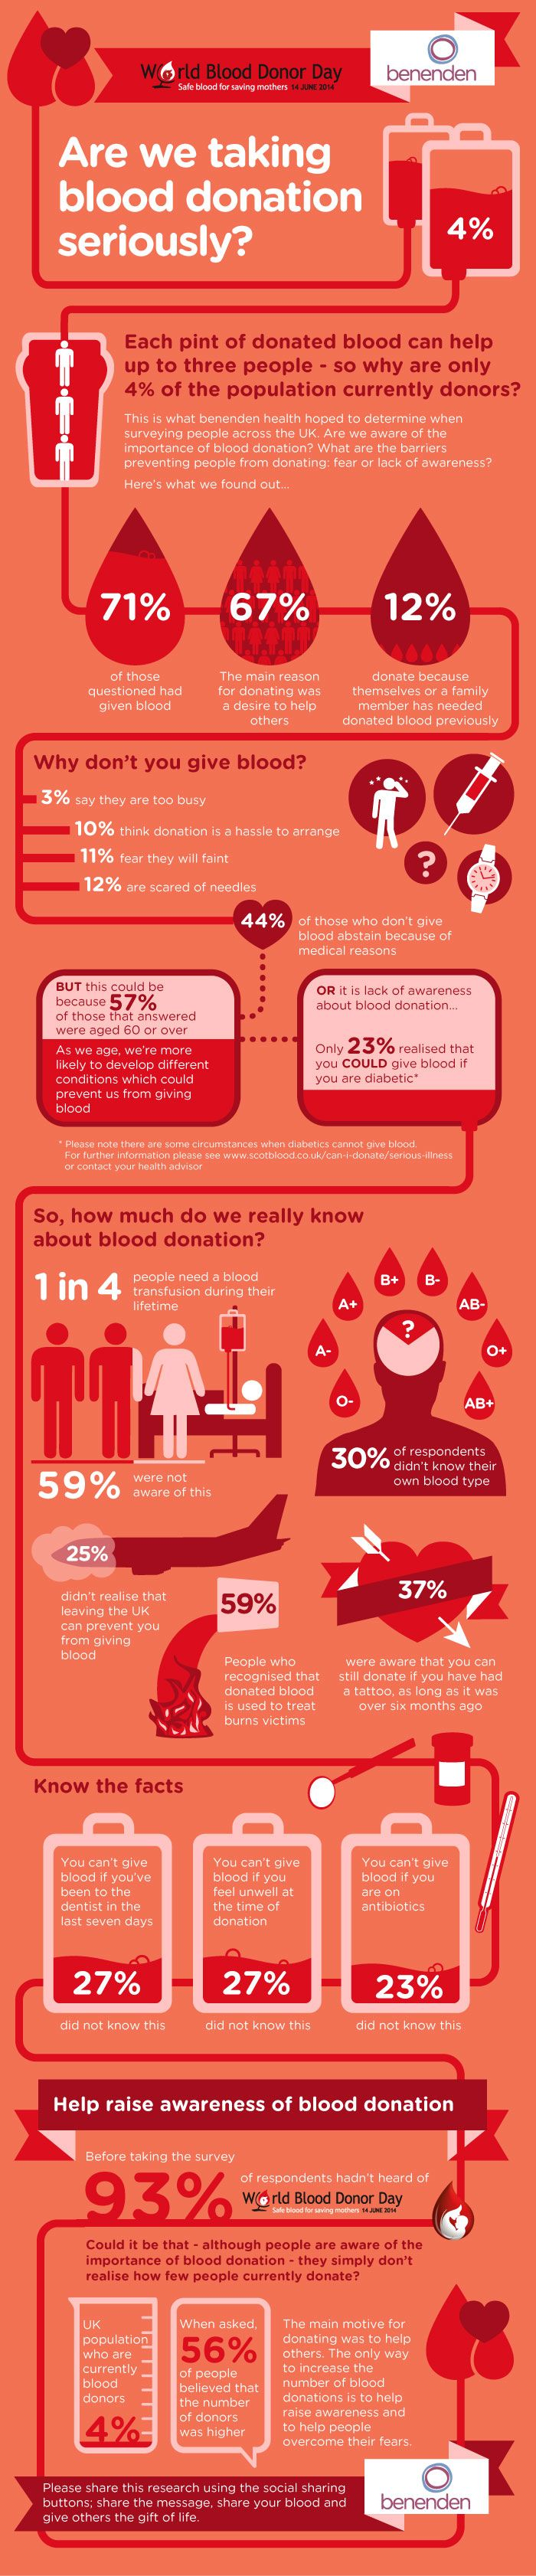 best ideas about blood donation blood donation blood donation infogrpahic benenden